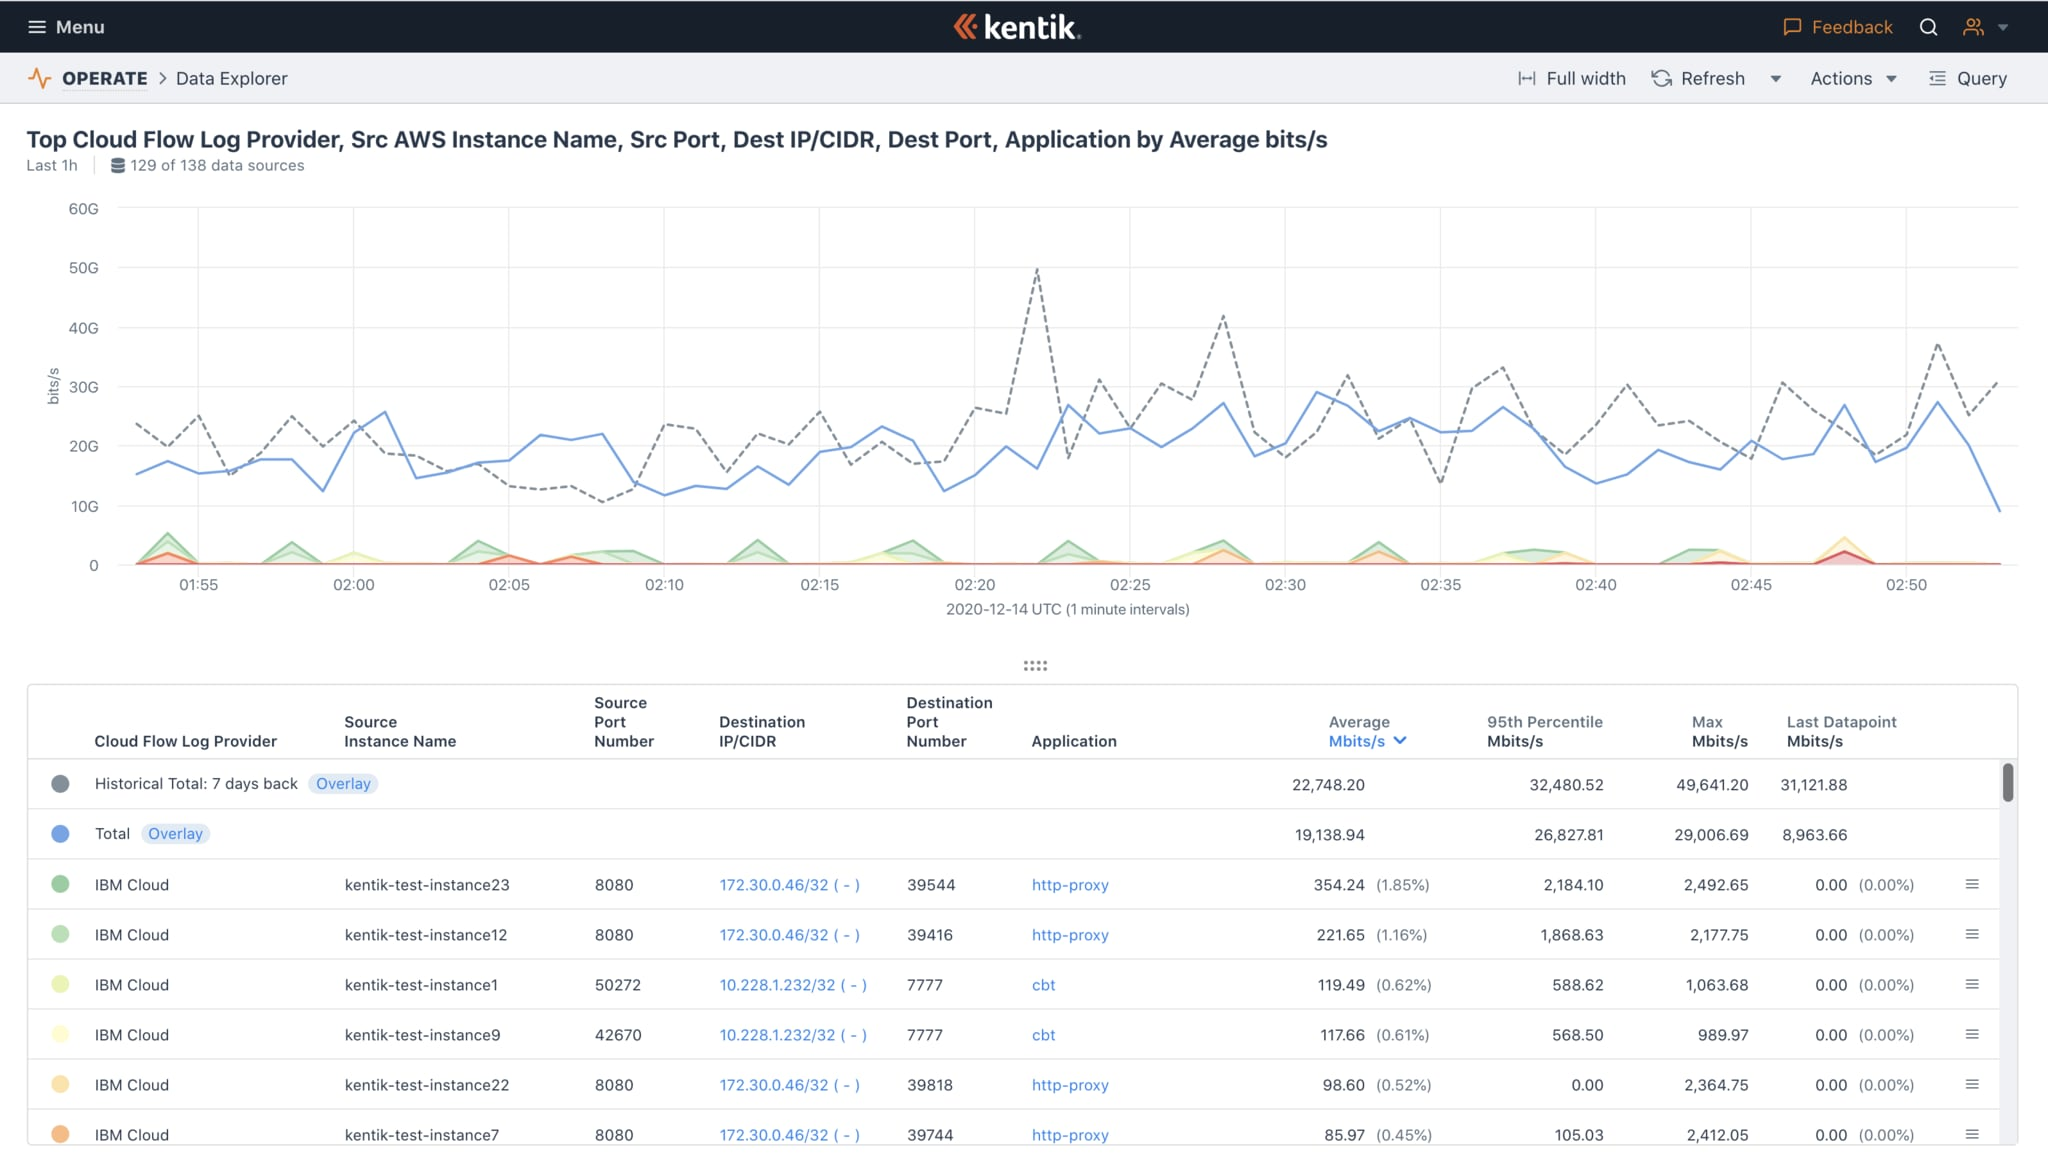 Ask any question and get instant answers using Kentik's Data Explorer for Network Observability: